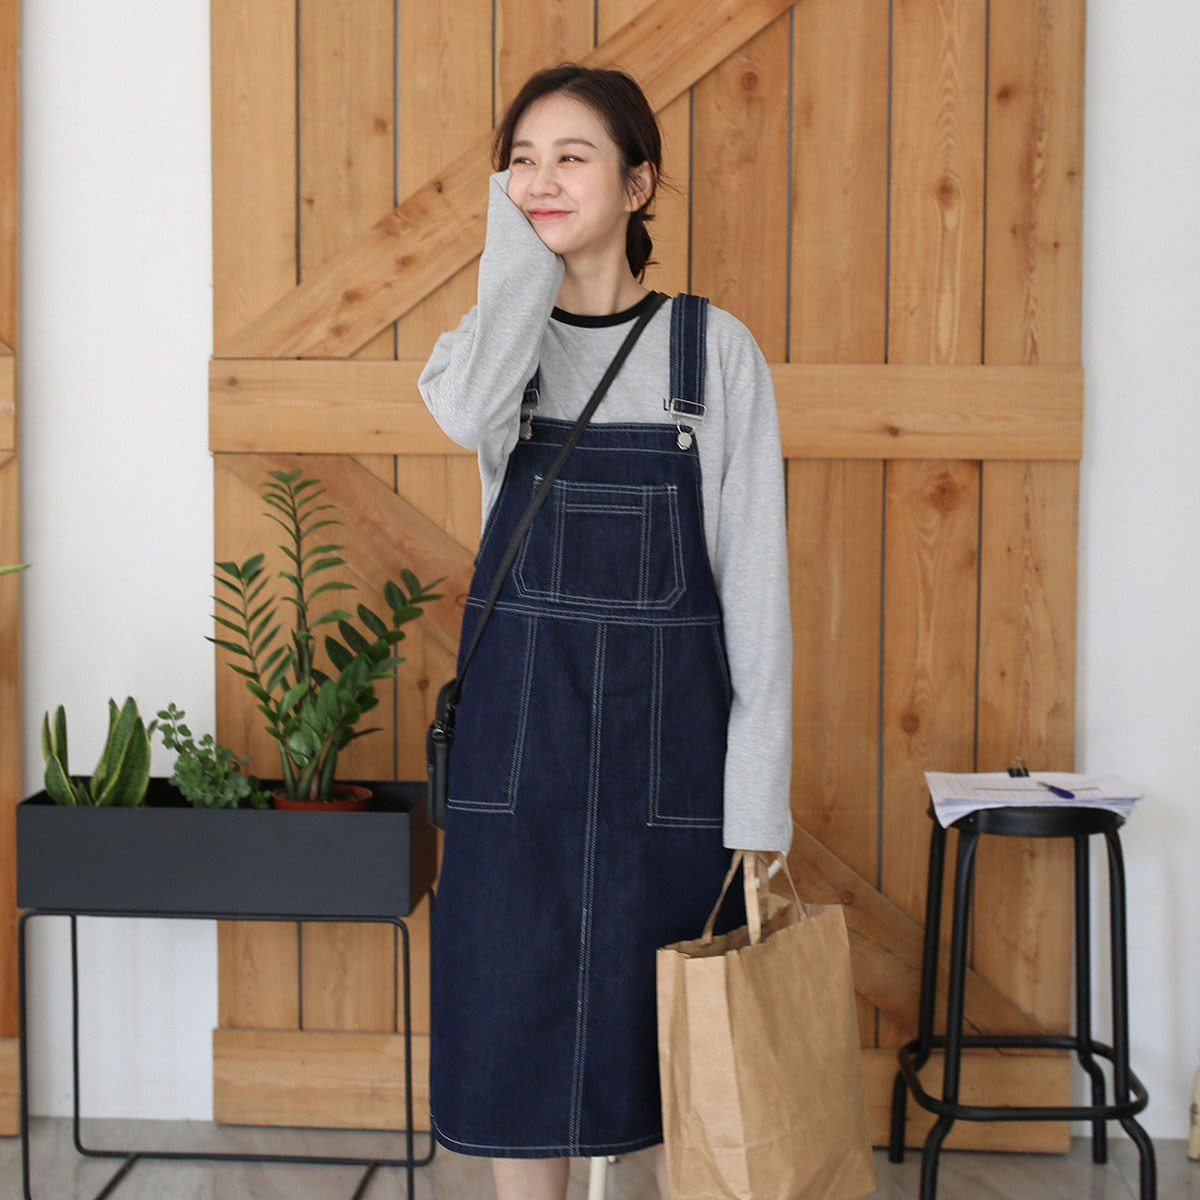 Mitsukoshi Japanese retro denim suspender dress suspender skirt academy style 2019 new womens dress over the Knee Skirt